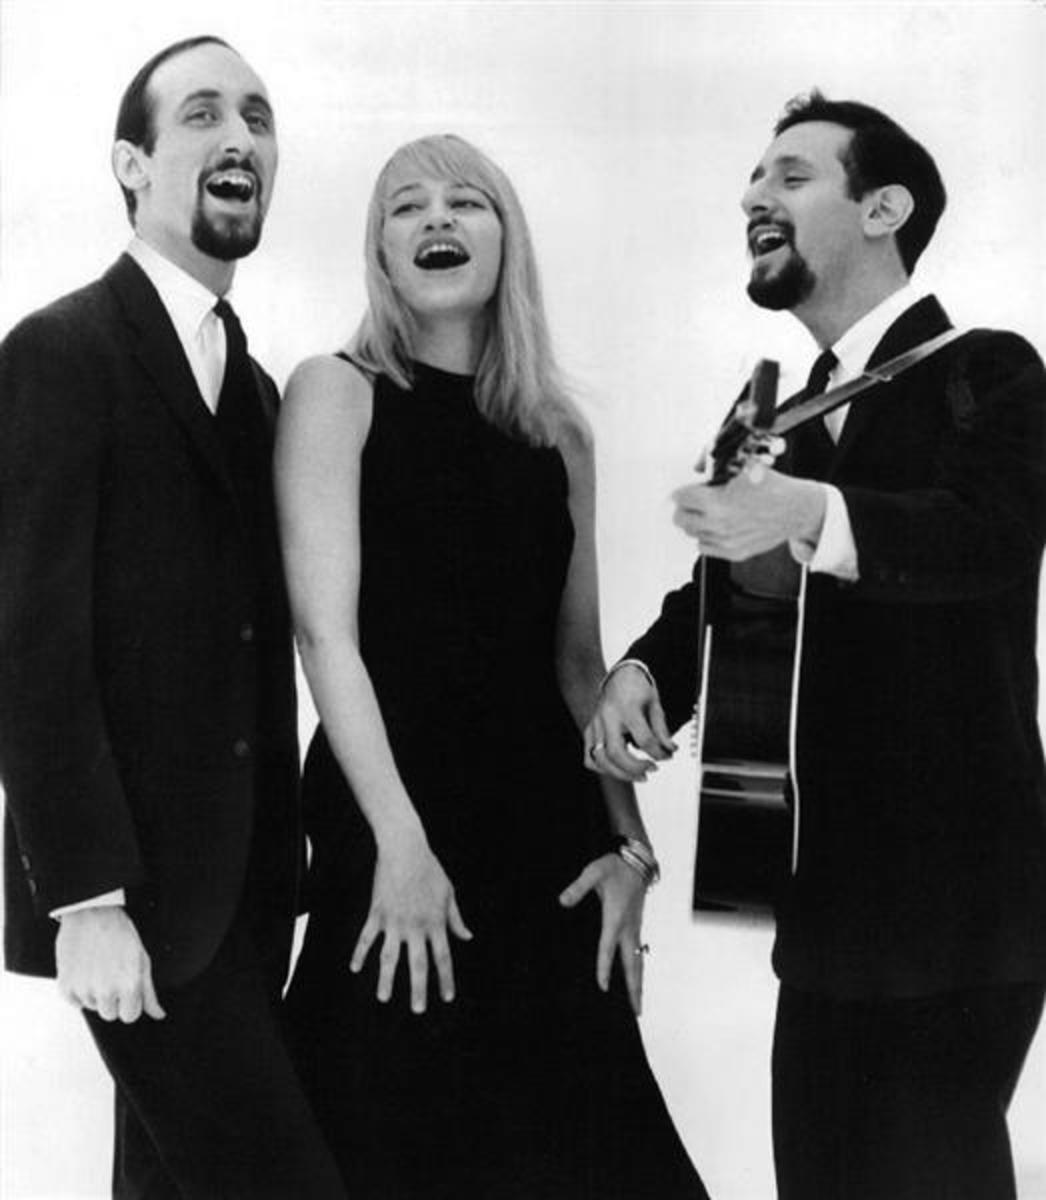 A photo of Peter, Paul and Mary dated May 21, 1963